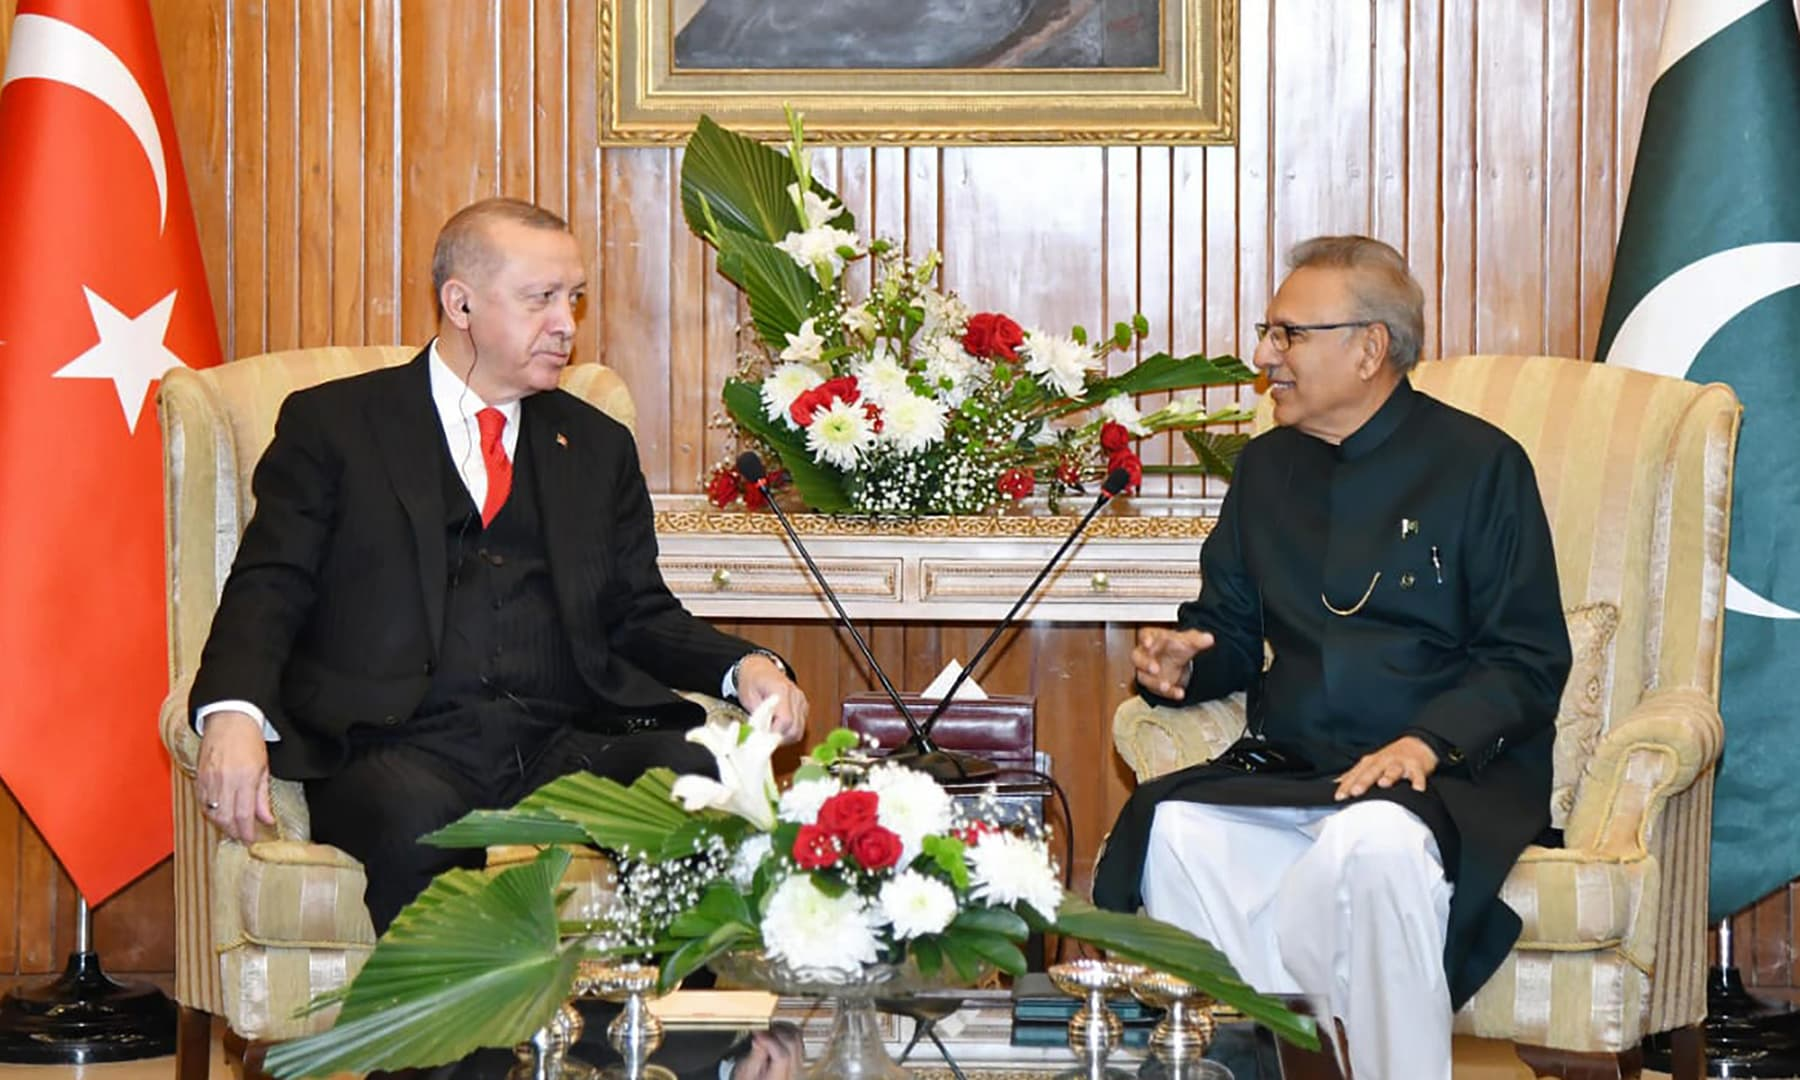 President Arif Alvi, right, meets visiting Turkish President Erdogan in Islamabad, Thursday. — PID via AP